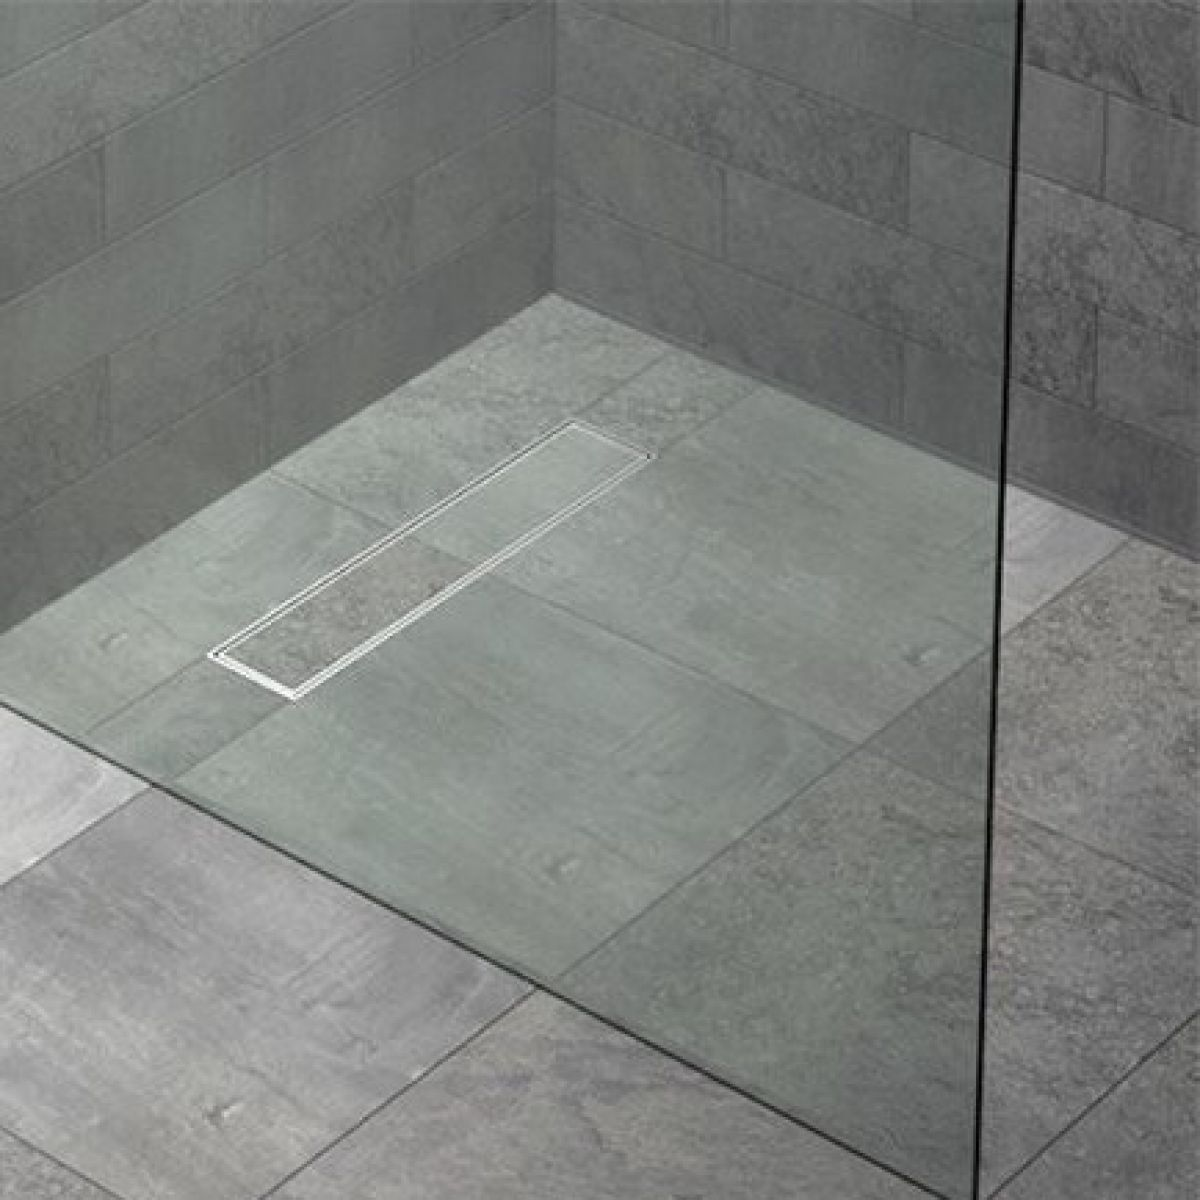 kudos floor4ma wetroom shower base with linear drain uk. Black Bedroom Furniture Sets. Home Design Ideas